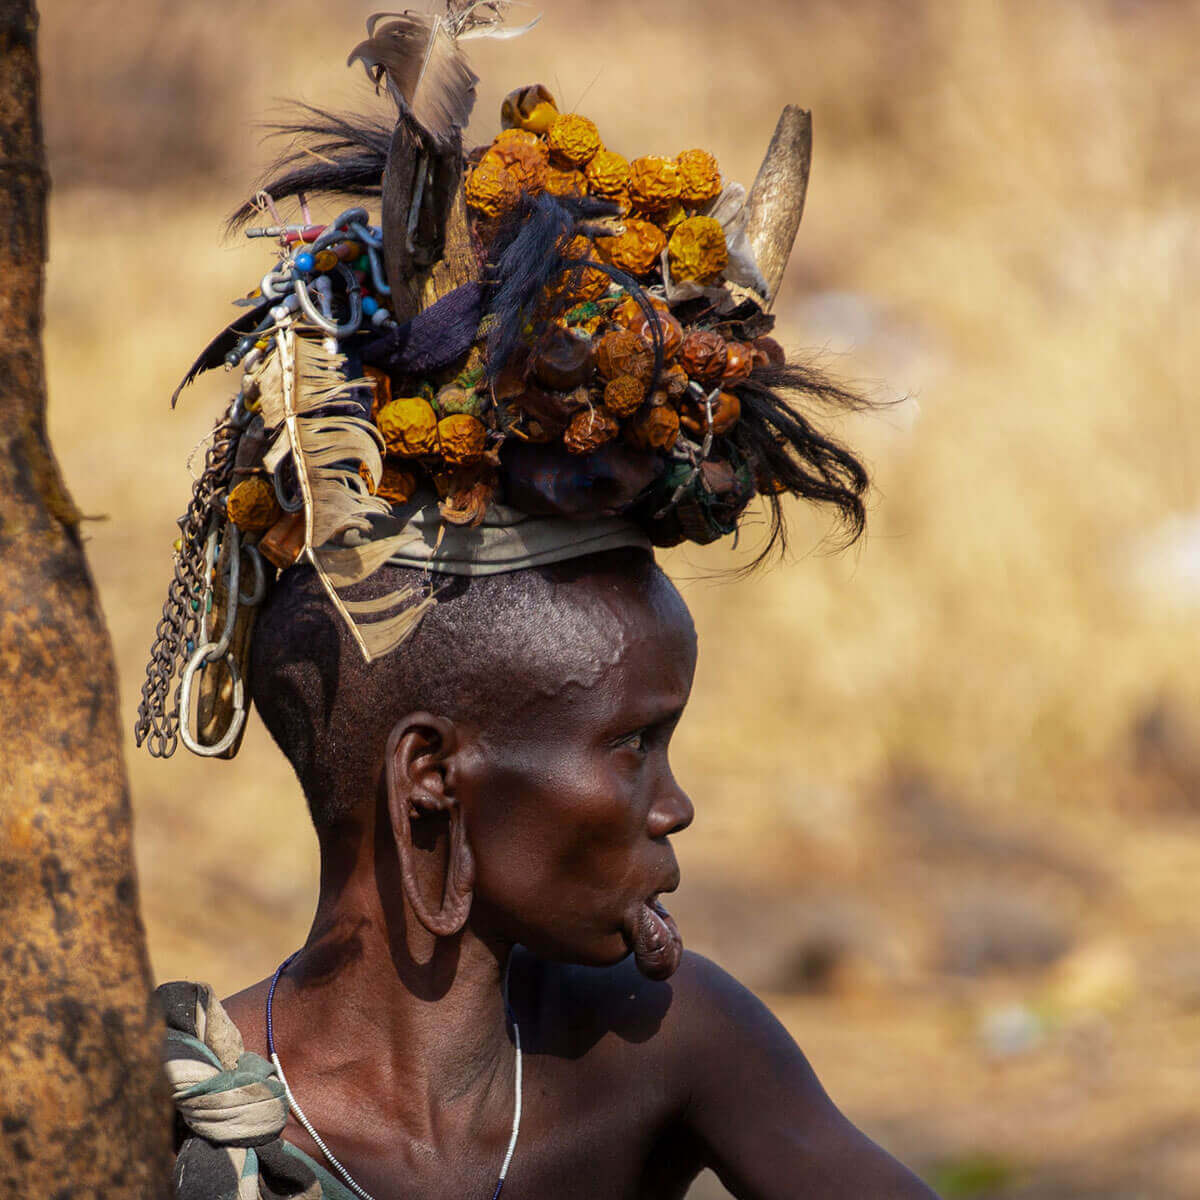 Ethiopia_tribes_mursi_village_surma_suri_traveling_experience_travel_tours_Africa_country_adventuresinethiopia